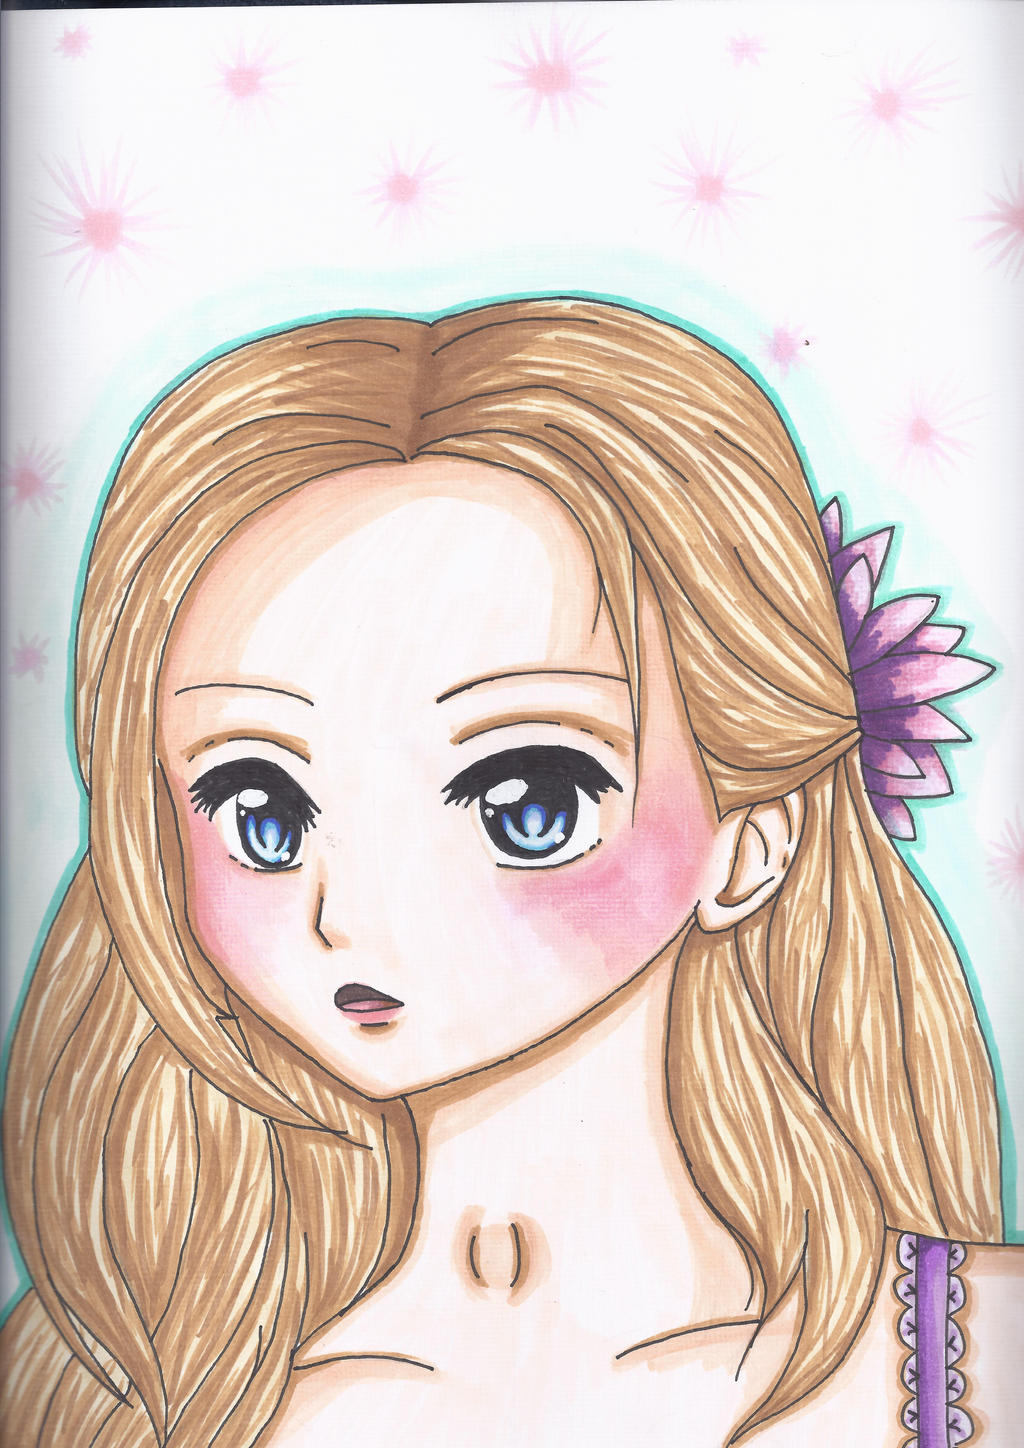 Girly girl by missciaocopic on deviantart - Girly girl anime ...